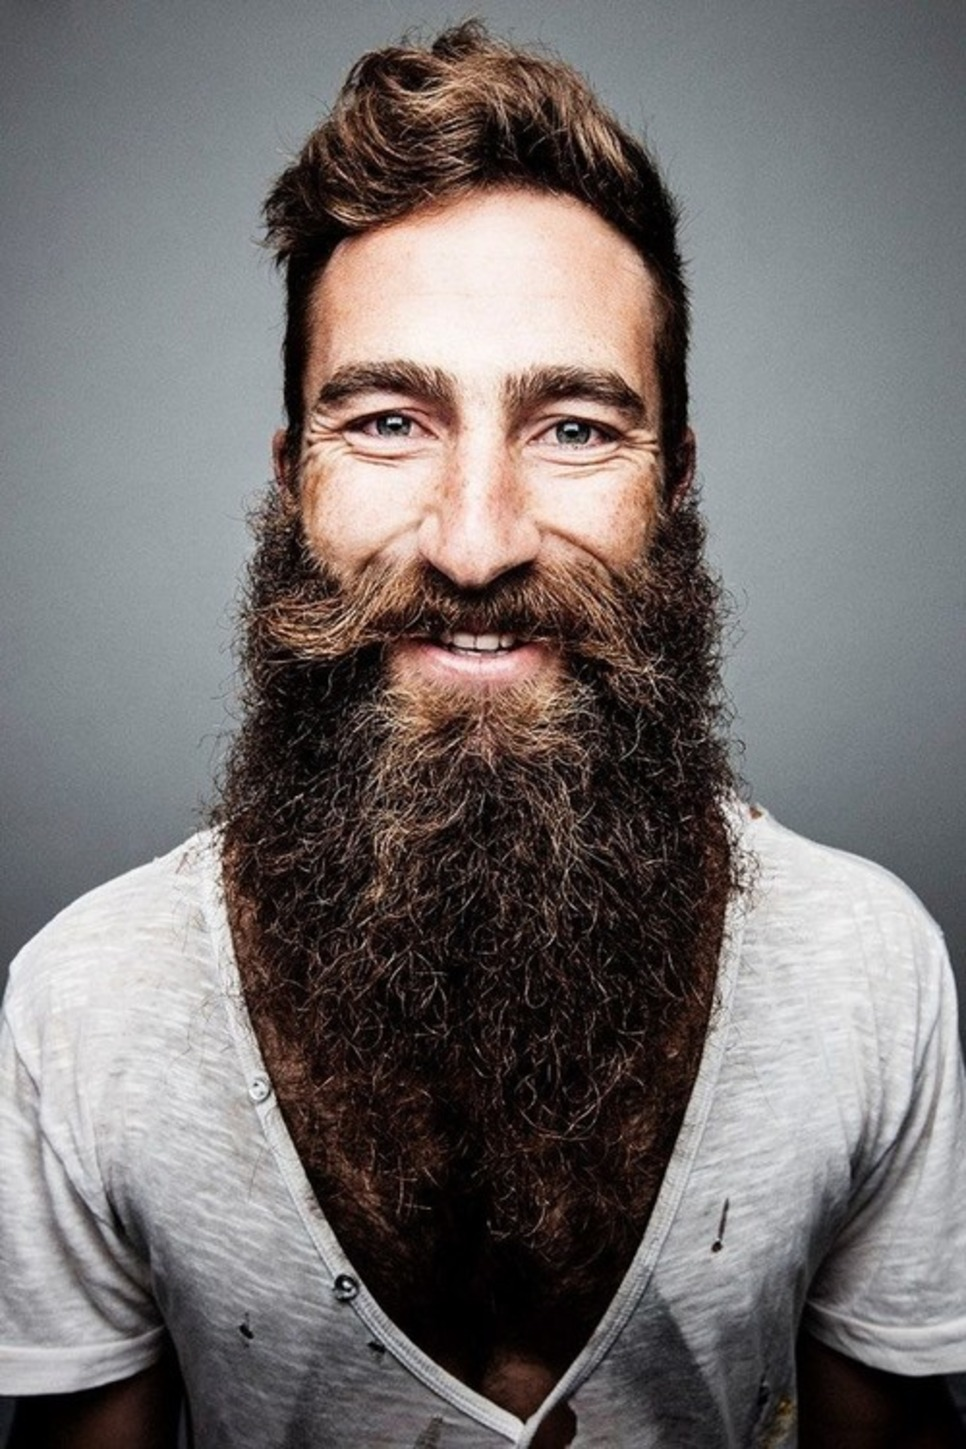 Do you have to be hairy to be hip? The Hipster Beard Revolution